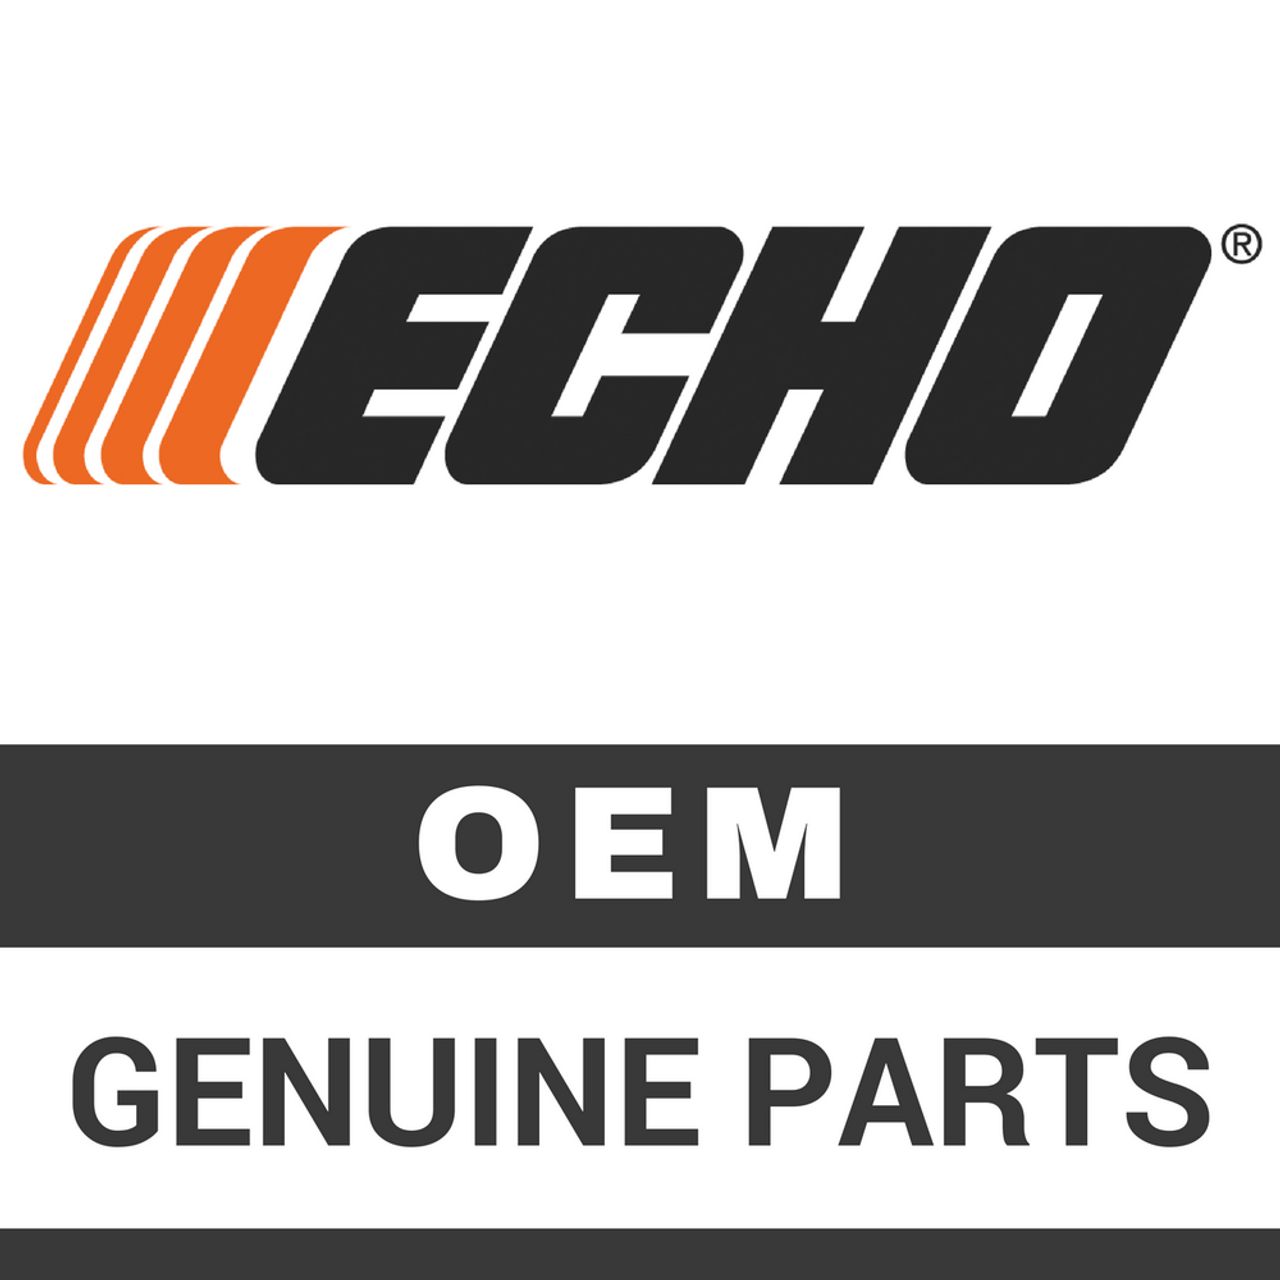 ECHO 99988803002 - DISPOSABLE MASK - 2 PACK - Image 1